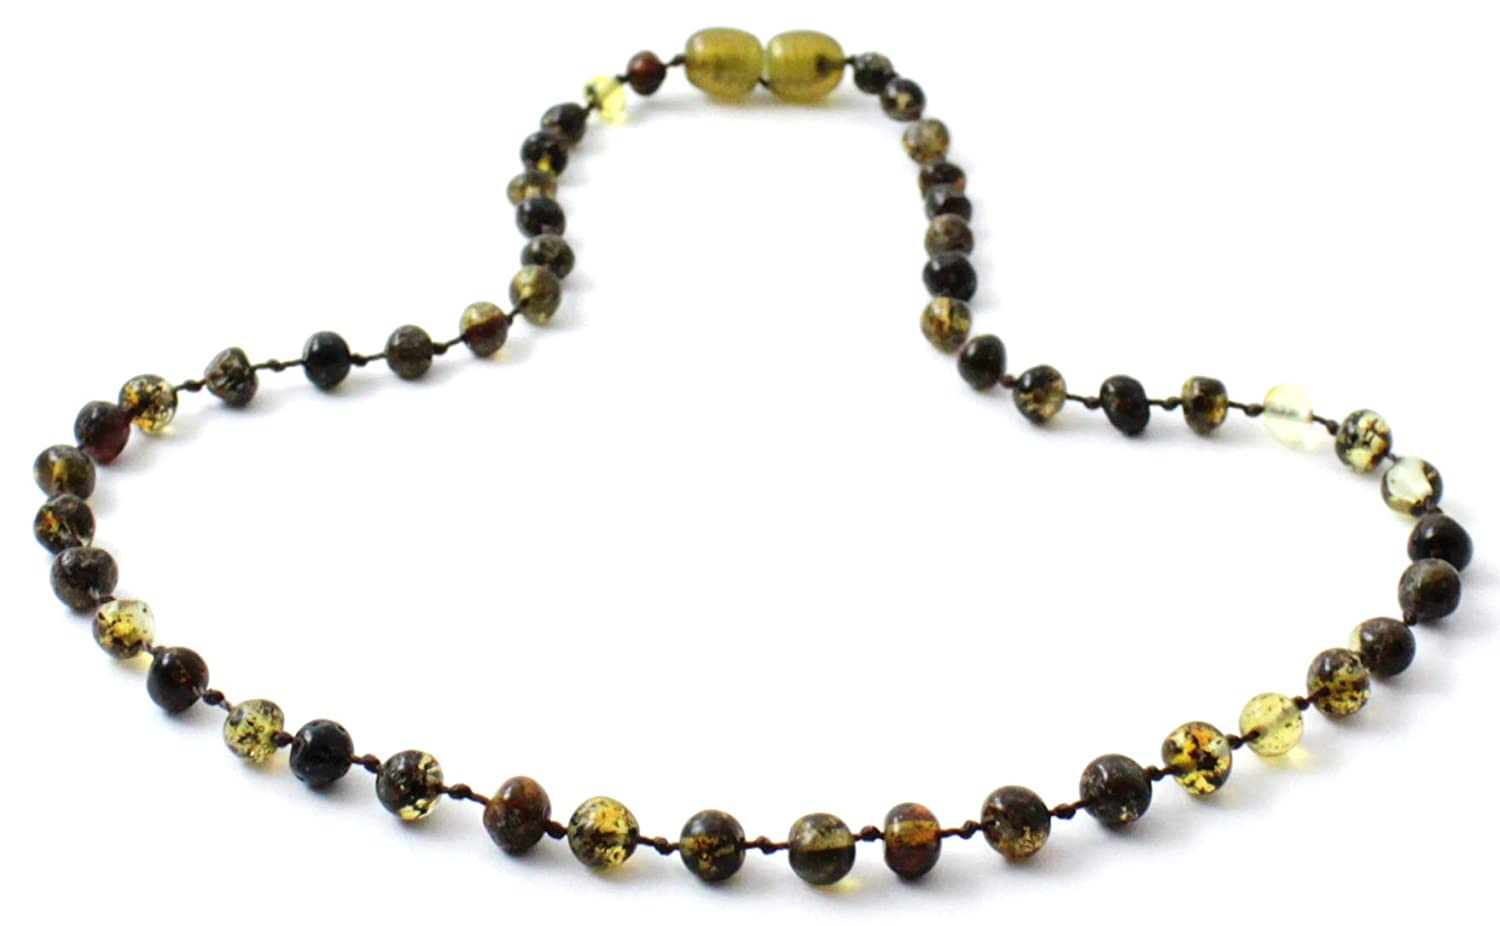 TipTop-Eco Baltic Amber Teething Anklet or Bracelet for Baby or Toddler Polished Green Beads 5.5 Inches Long TipTop/_Eco Green, 5.5 Inches